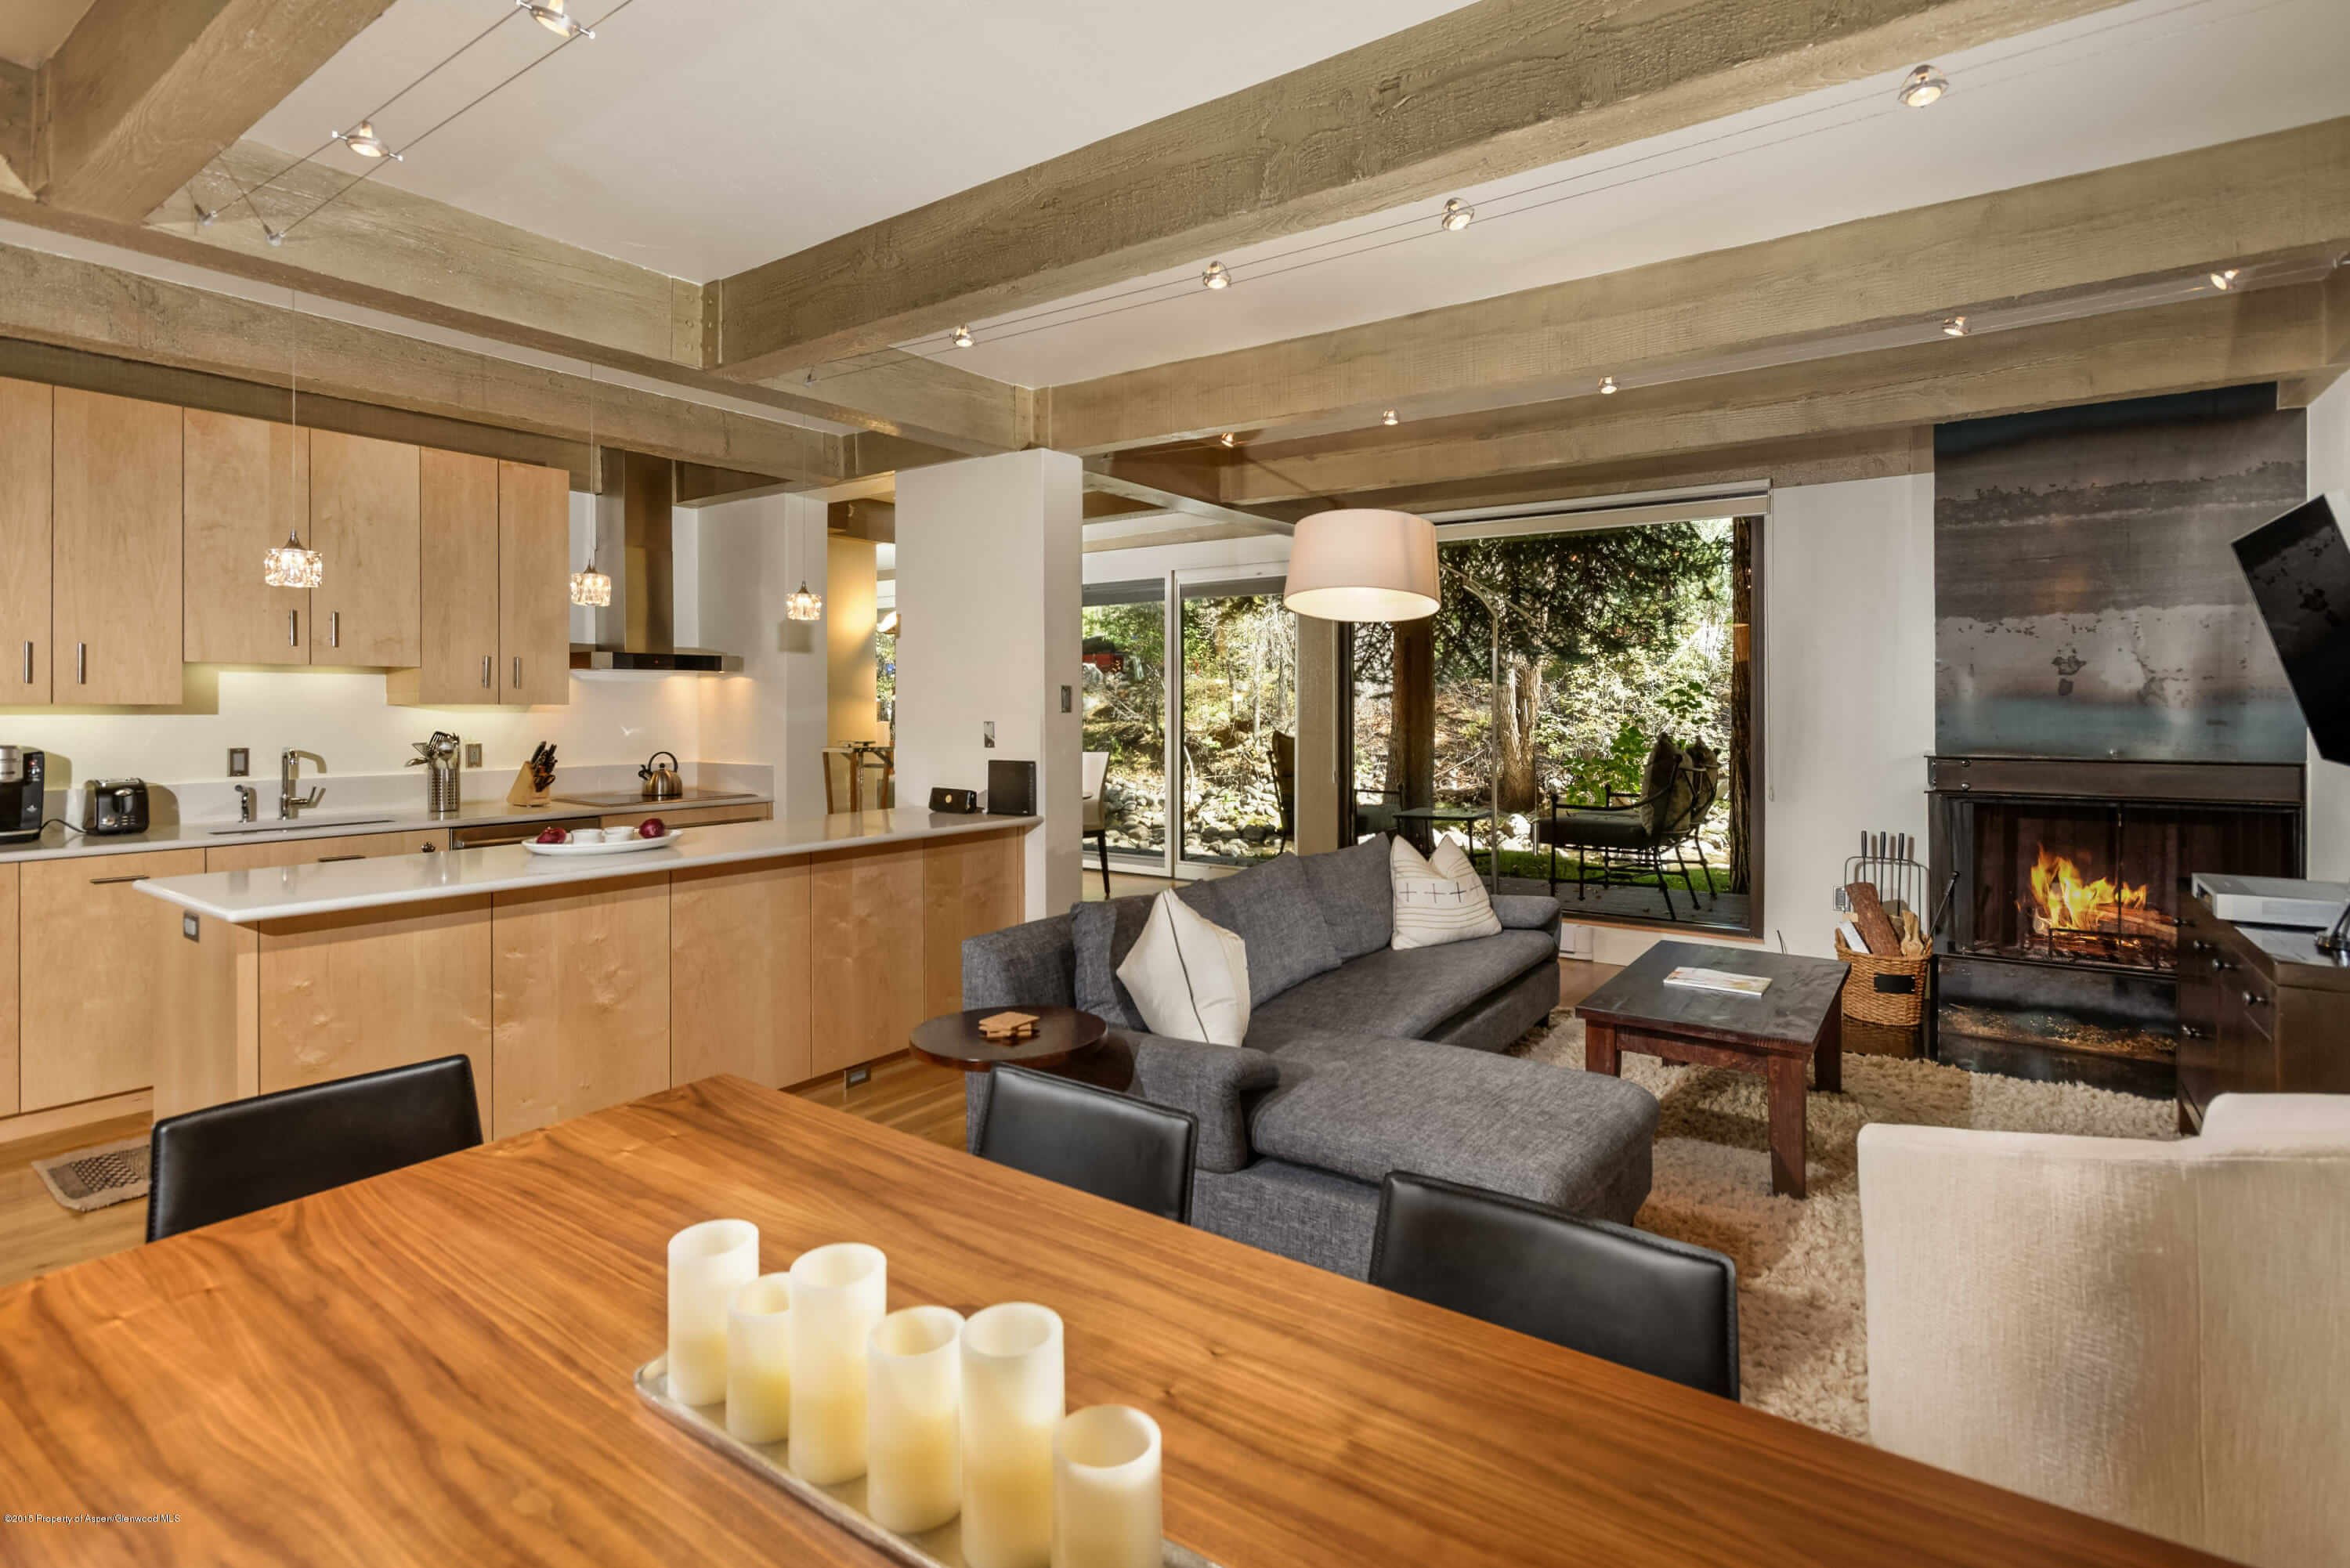 Best Aspen Riverfront 2-Bdrm Condo Sells at $2.95M$1,966 sq ft Image